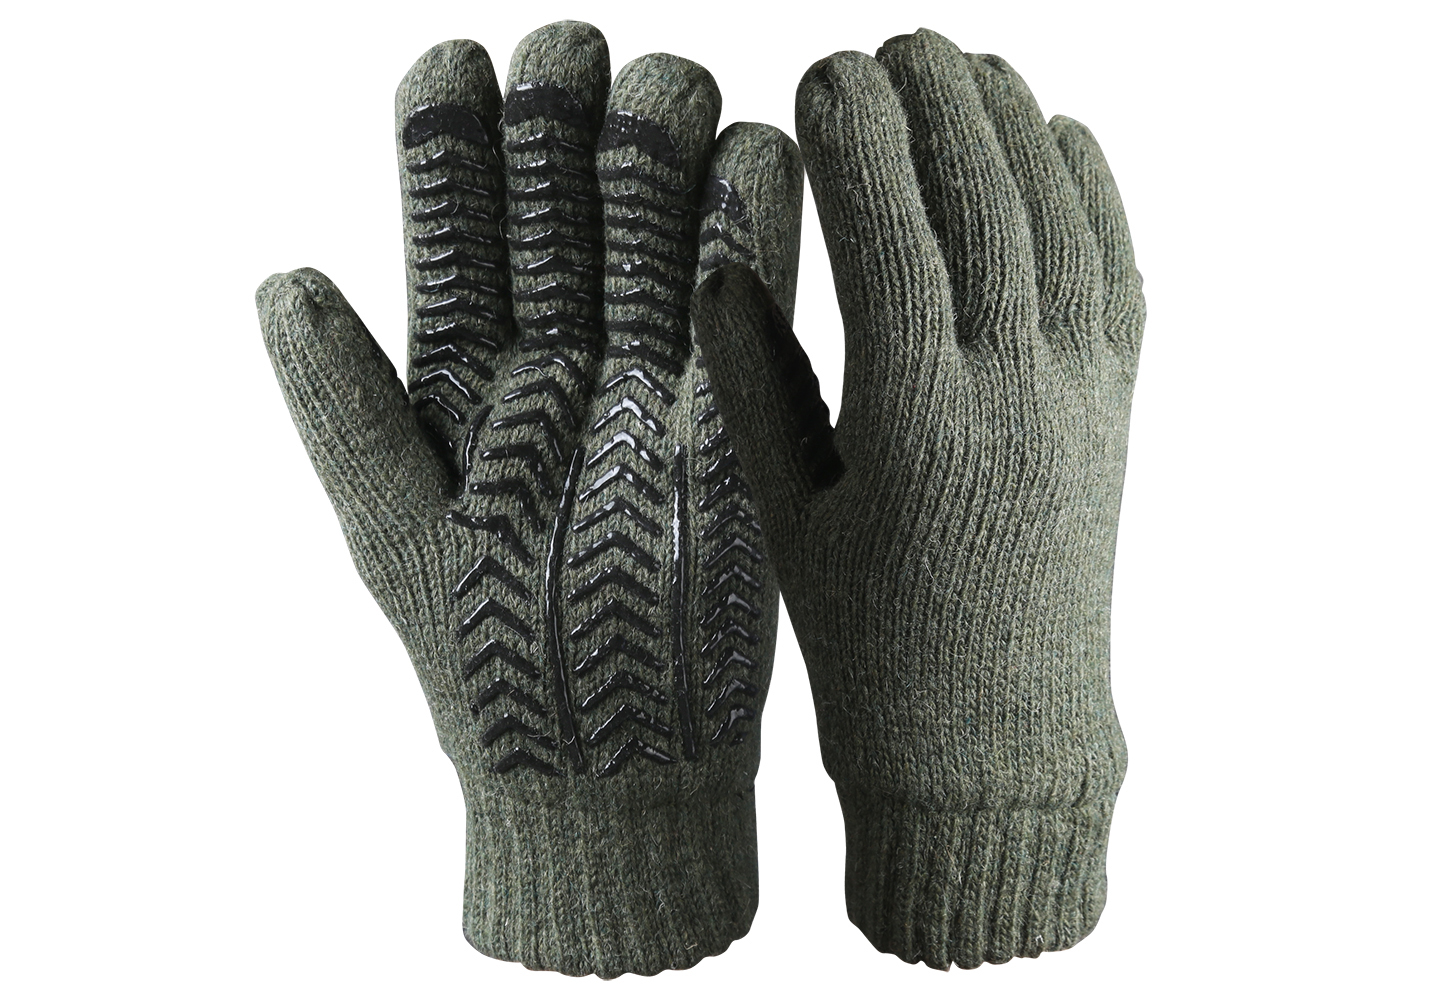 Ragg Wool Insulate Gloves/IWG-002-S